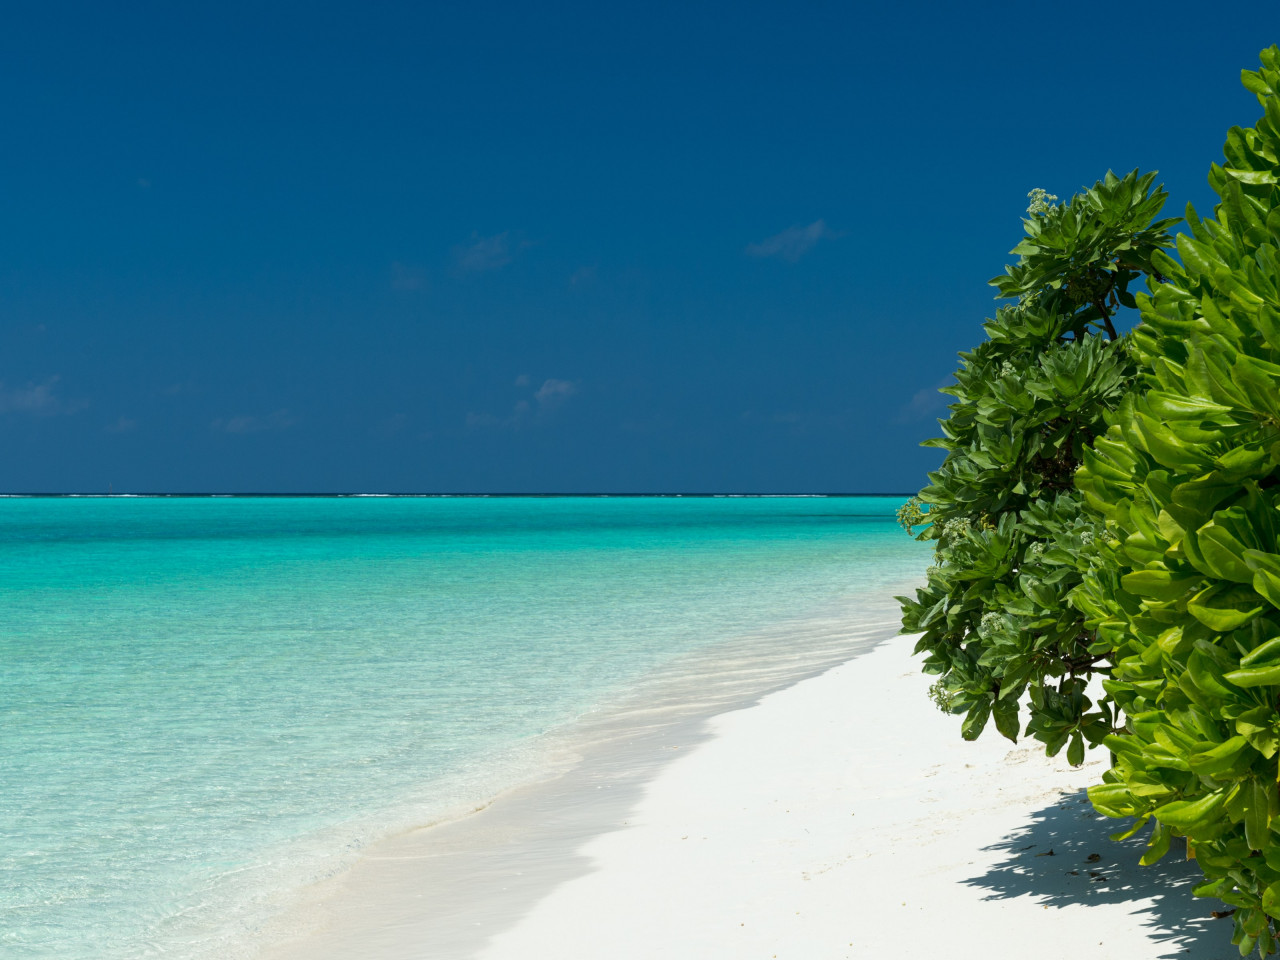 Turquoise waters of Maldives wallpaper 1280x960